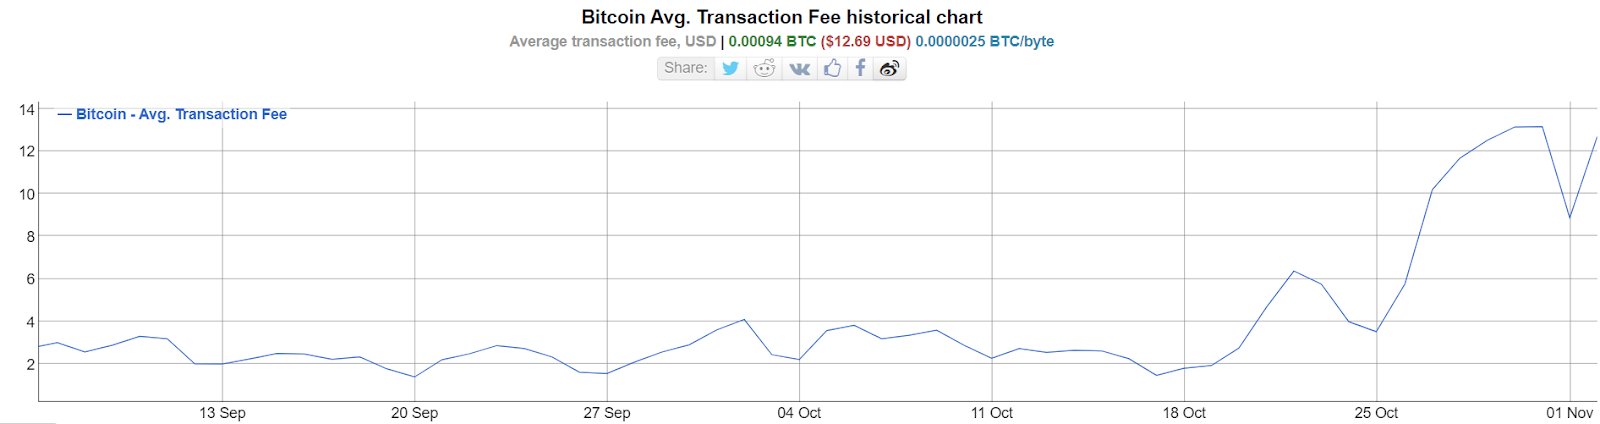 Bitcoin fees soared in October